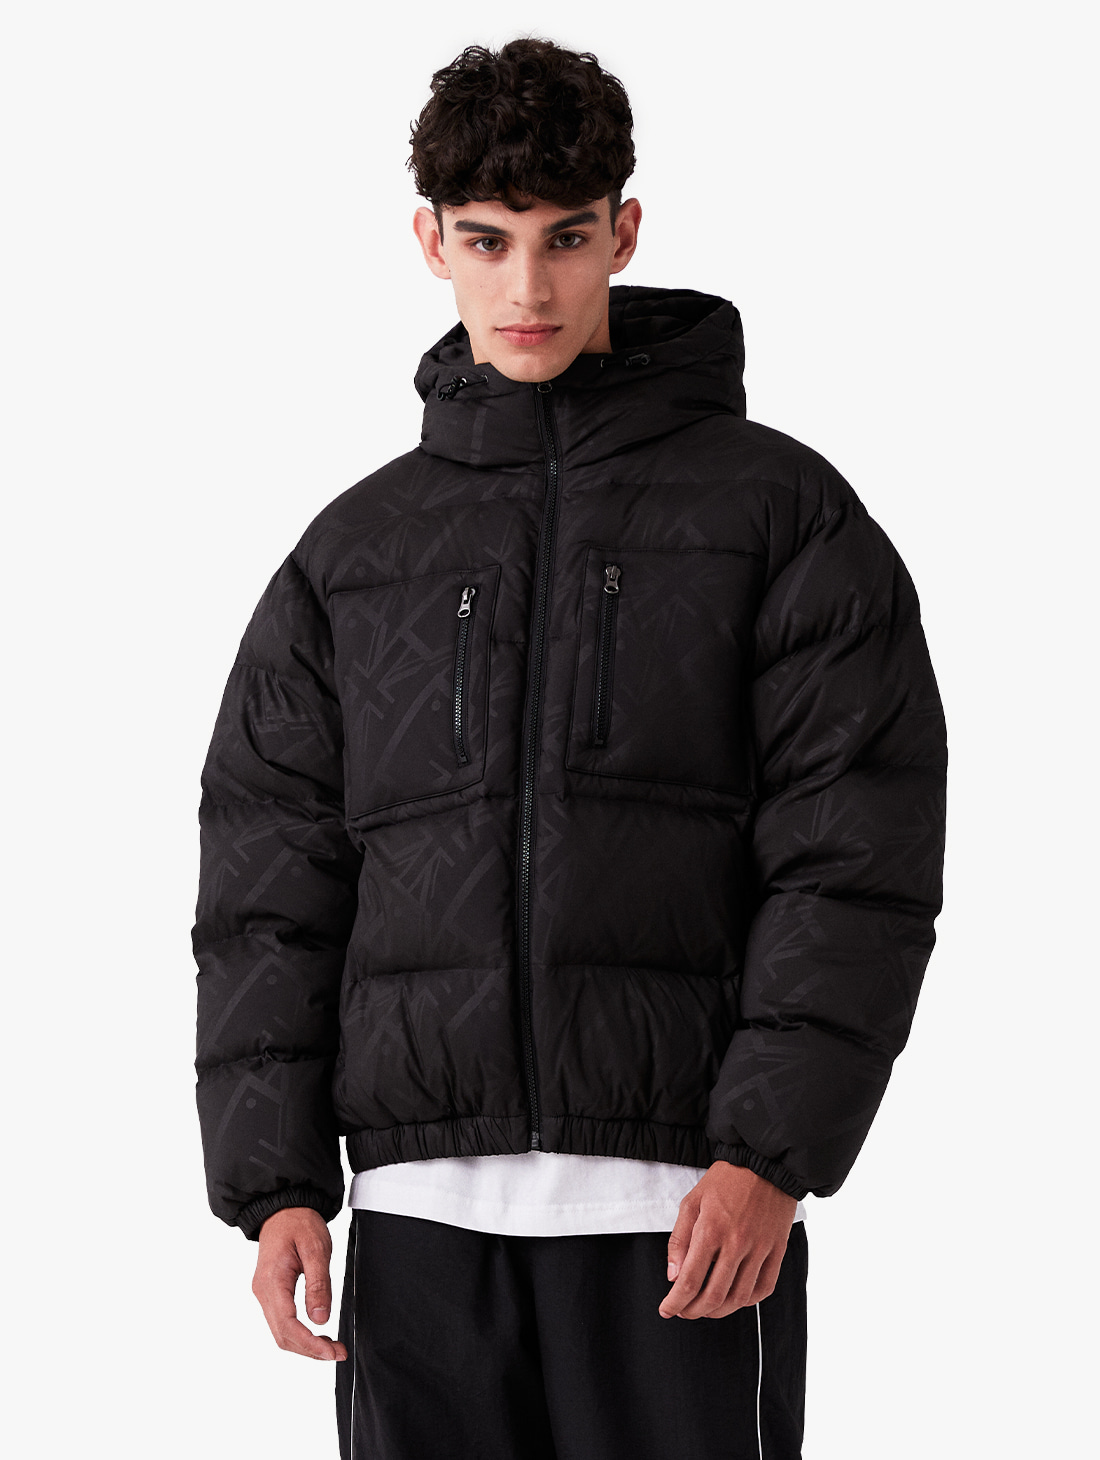 GOALSTUDIO (Sold Out) WWFC EMBO DOWN JACKET